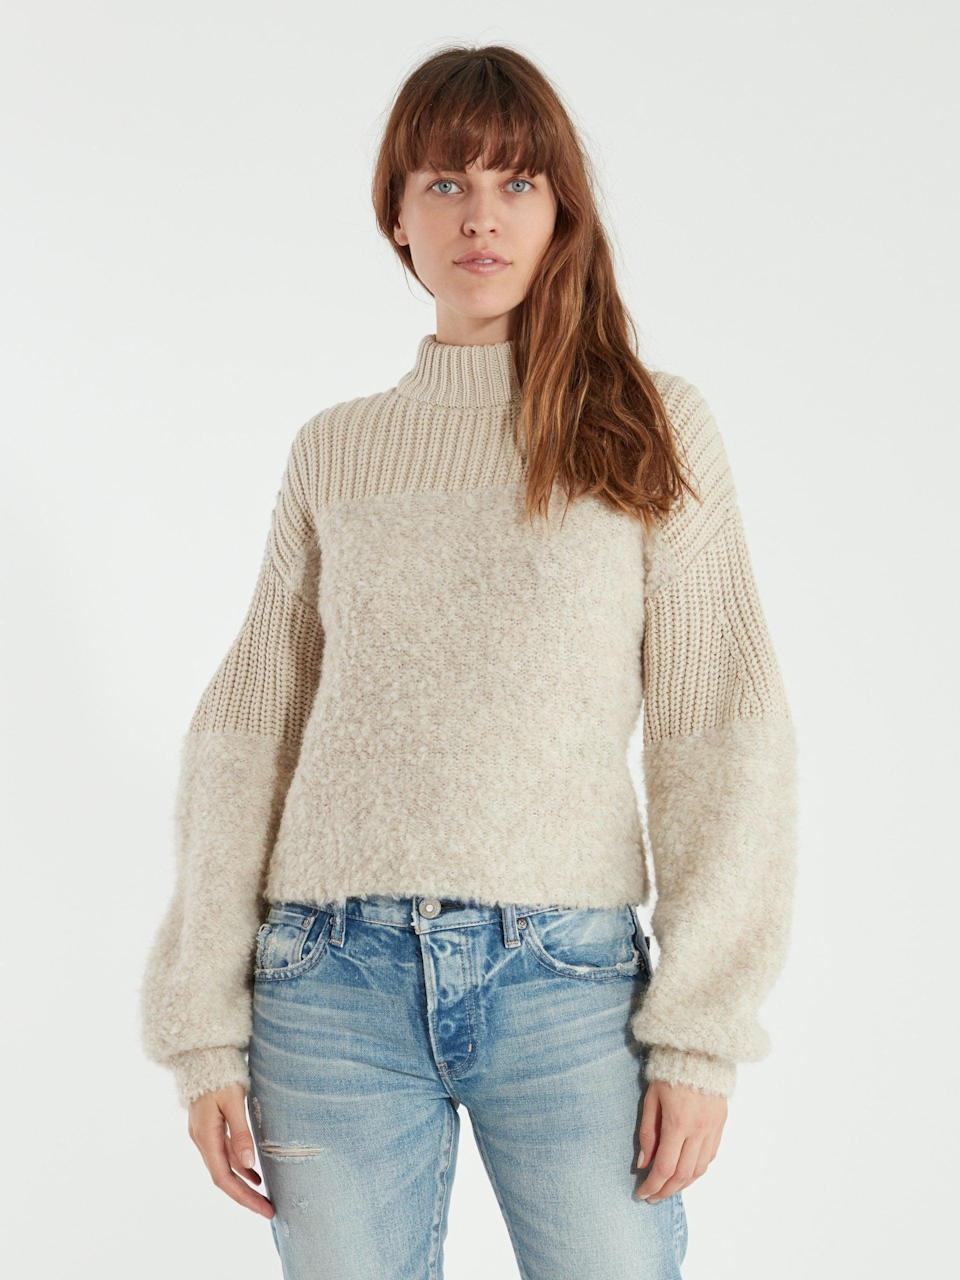 <p>It doesn't get any warmer than this <span>Rebecca Minkoff Chase Rib Turtleneck Sweater</span> ($106, originally $178). Combining a chunky turtleneck with fuzzy shearling, it was made to brave the cold in style. </p>